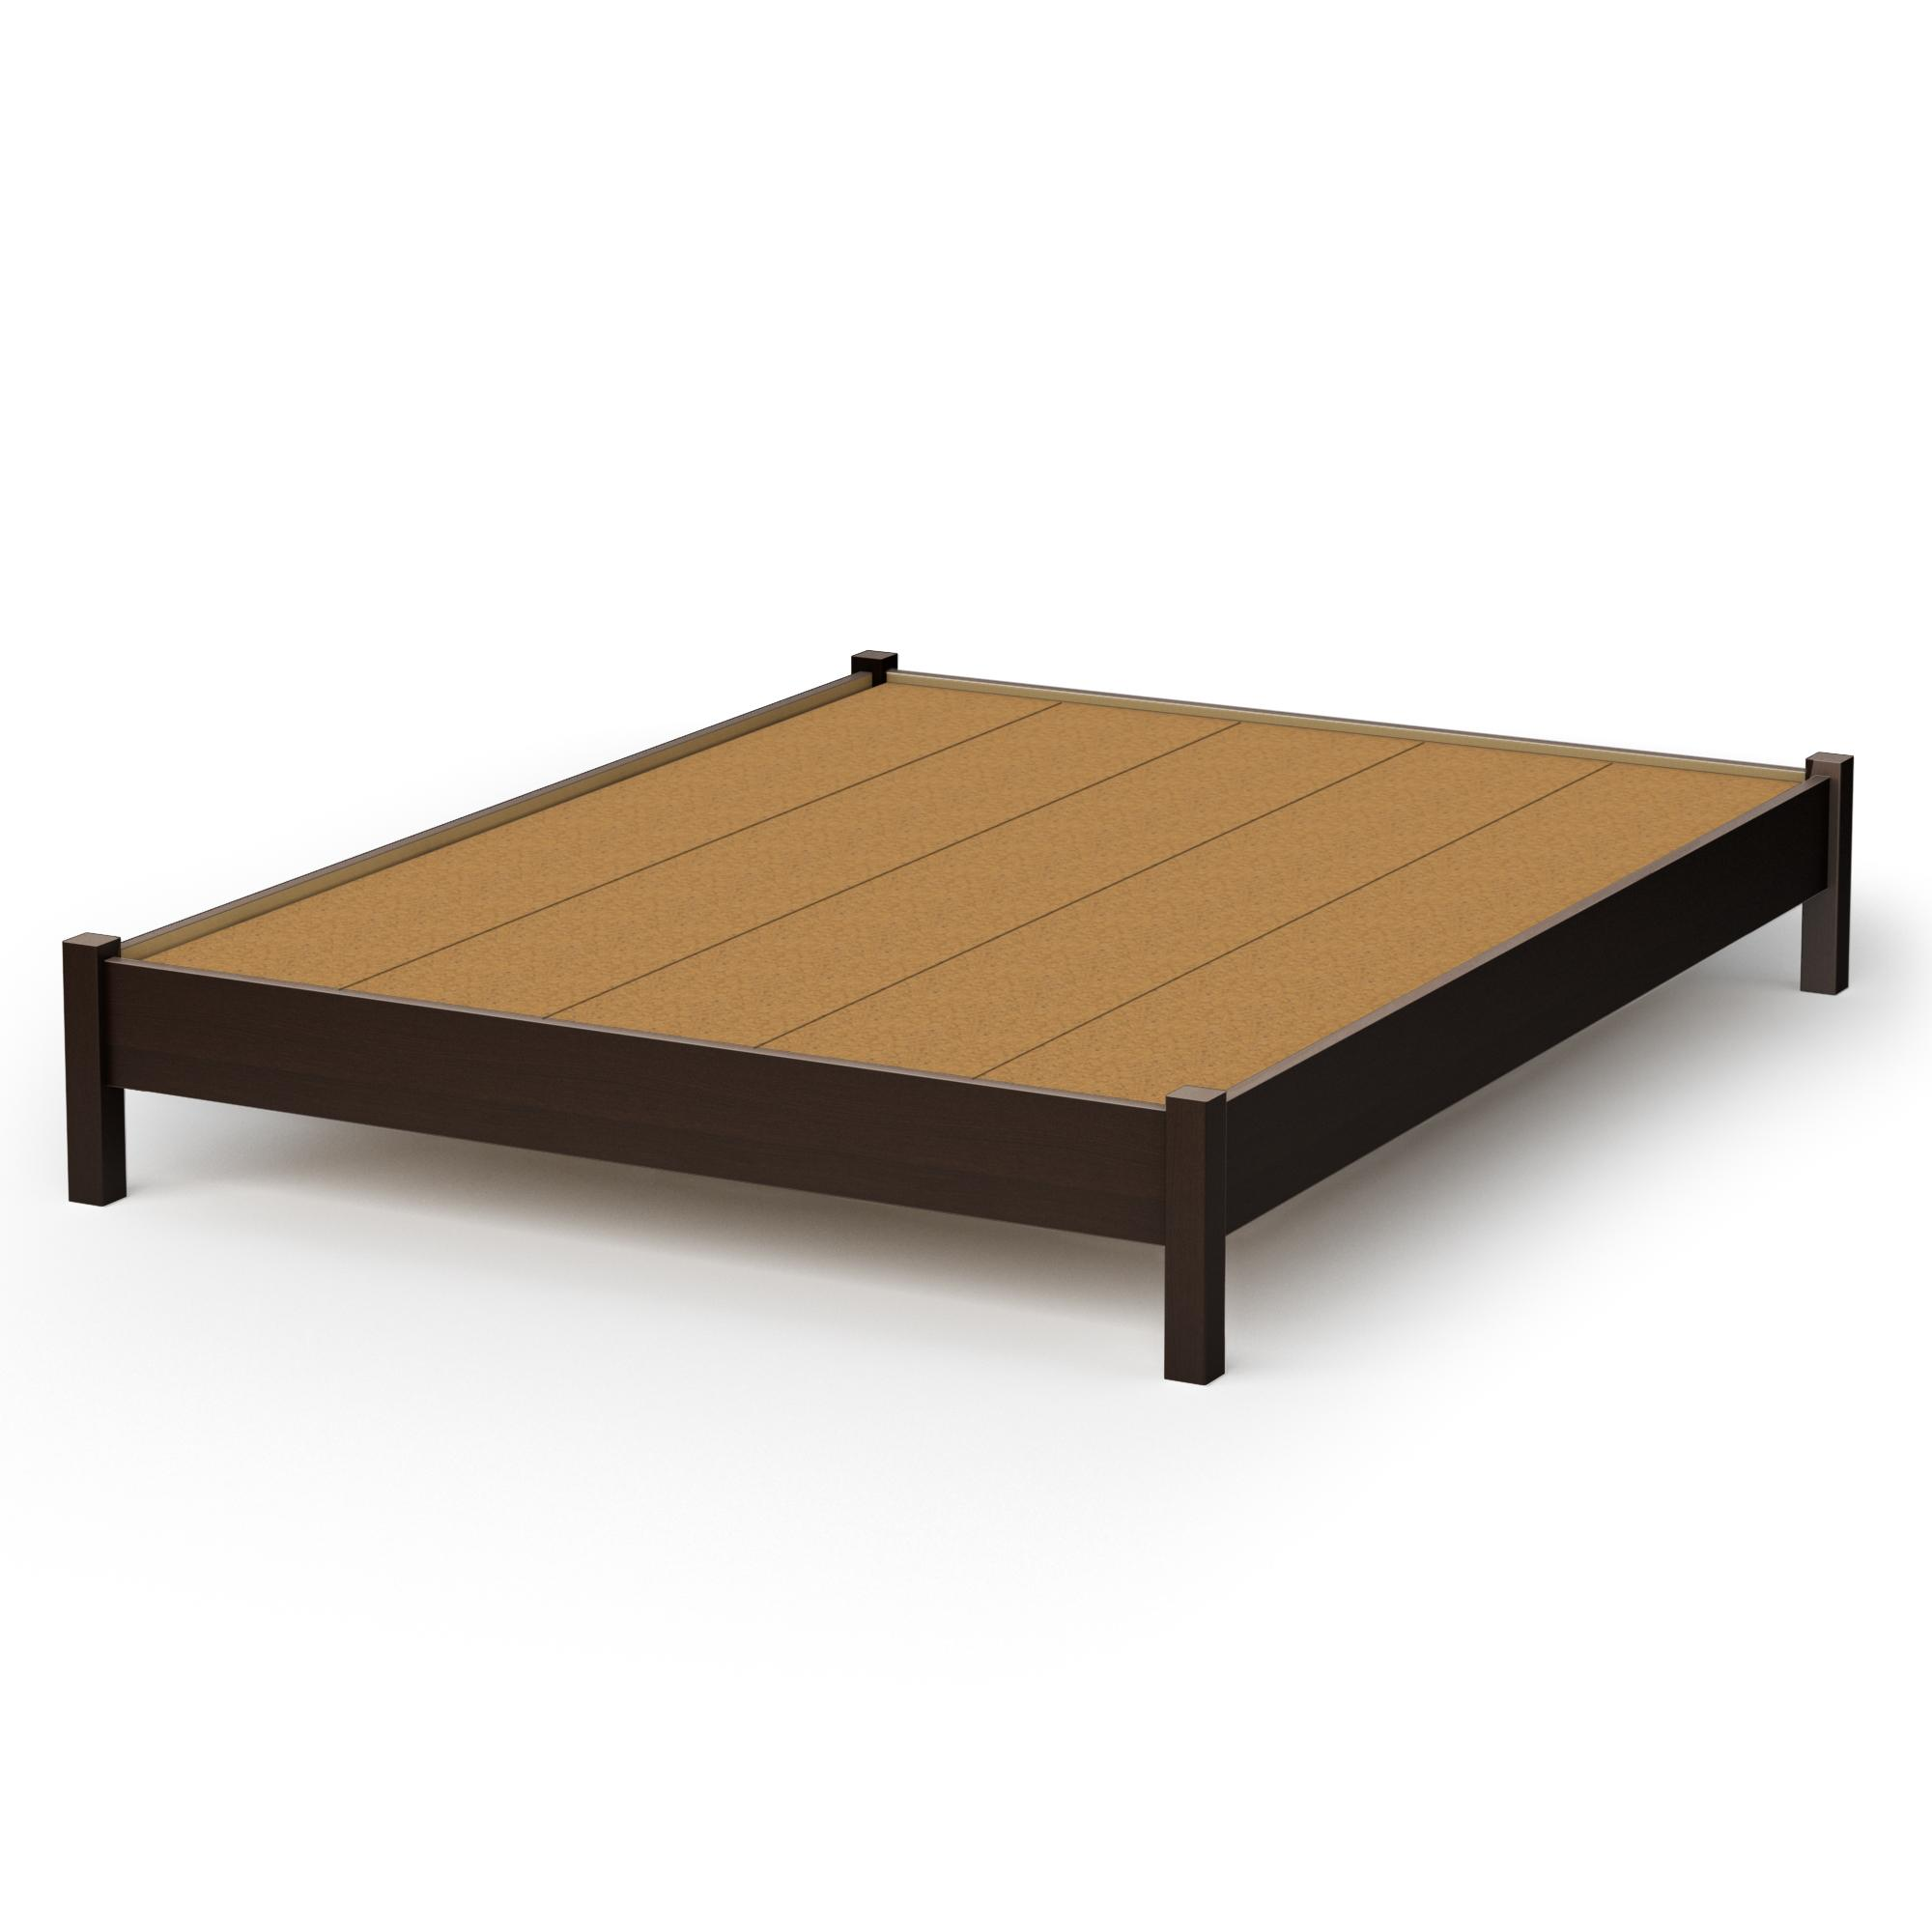 Make queen size platform bed frame quick woodworking for Queen size bed frame